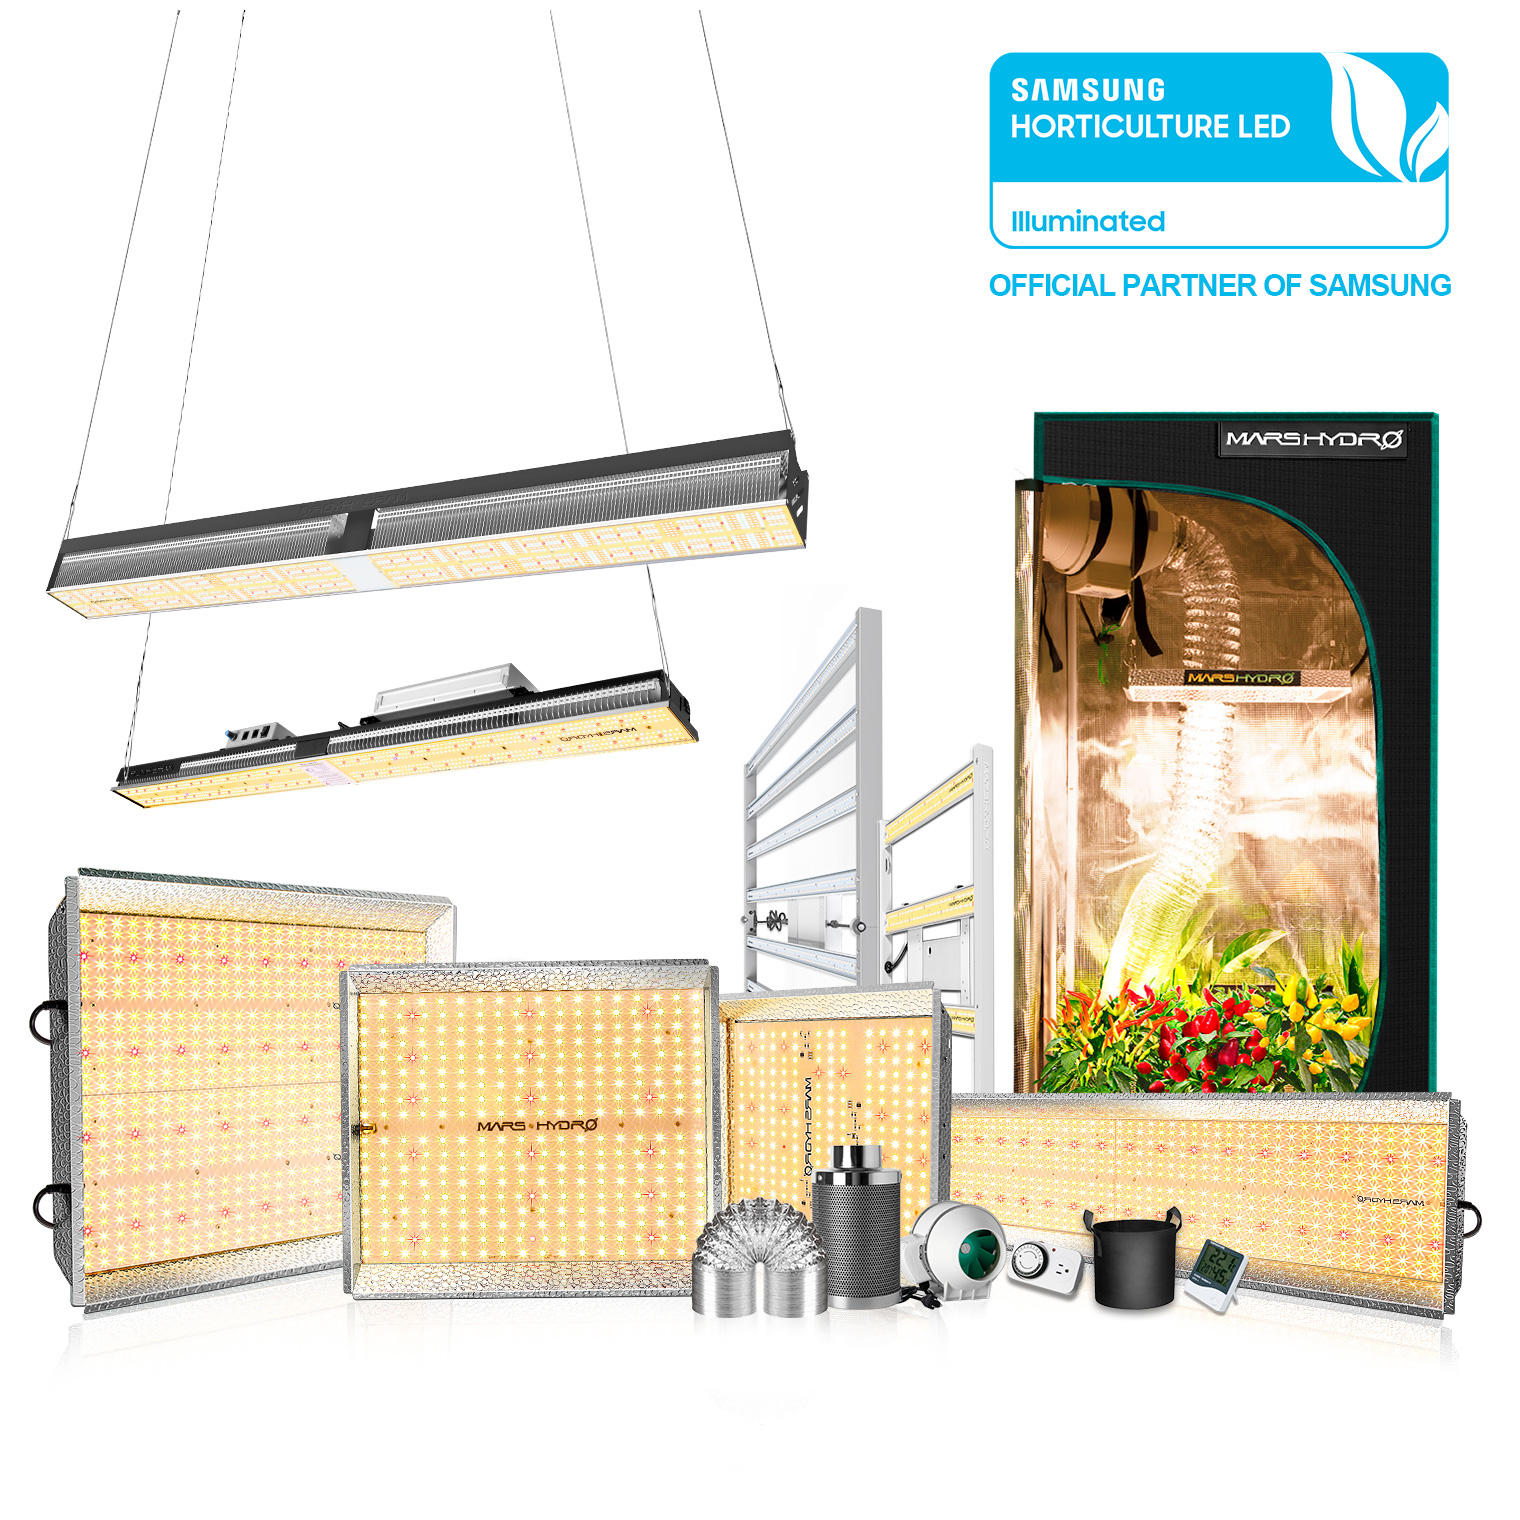 Free Shipping USA UK CAN EU RU Warehouse LED Grow Light Full Spectrum Greenhouse Led grow lights Indoor Grow light For Planting